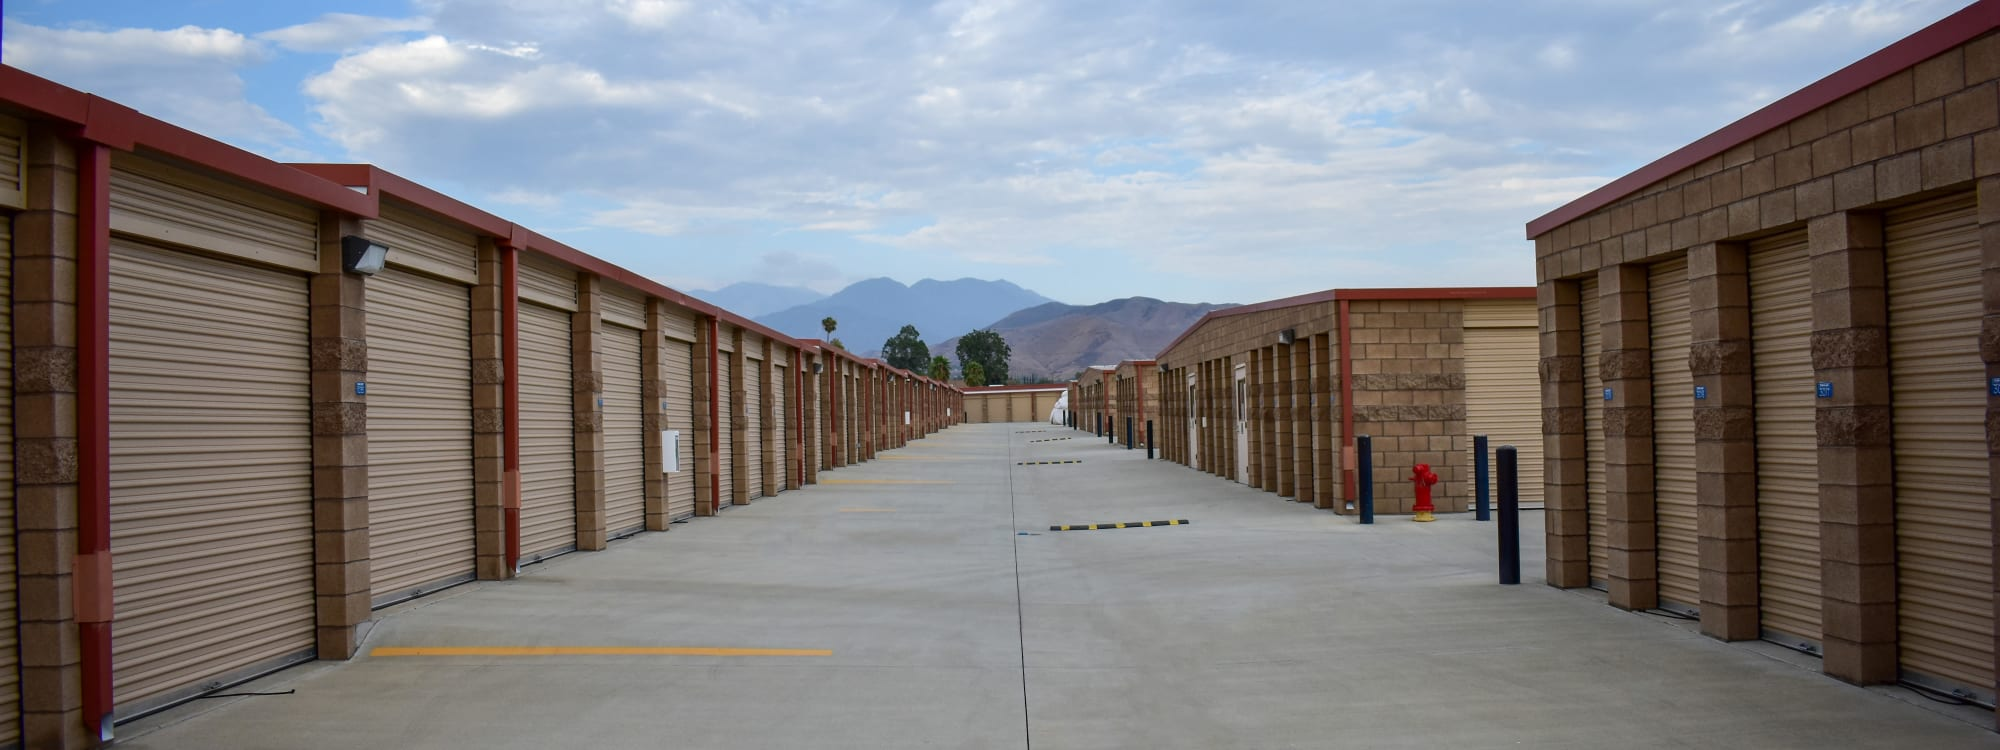 STOR-N-LOCK Self Storage in Redlands, California